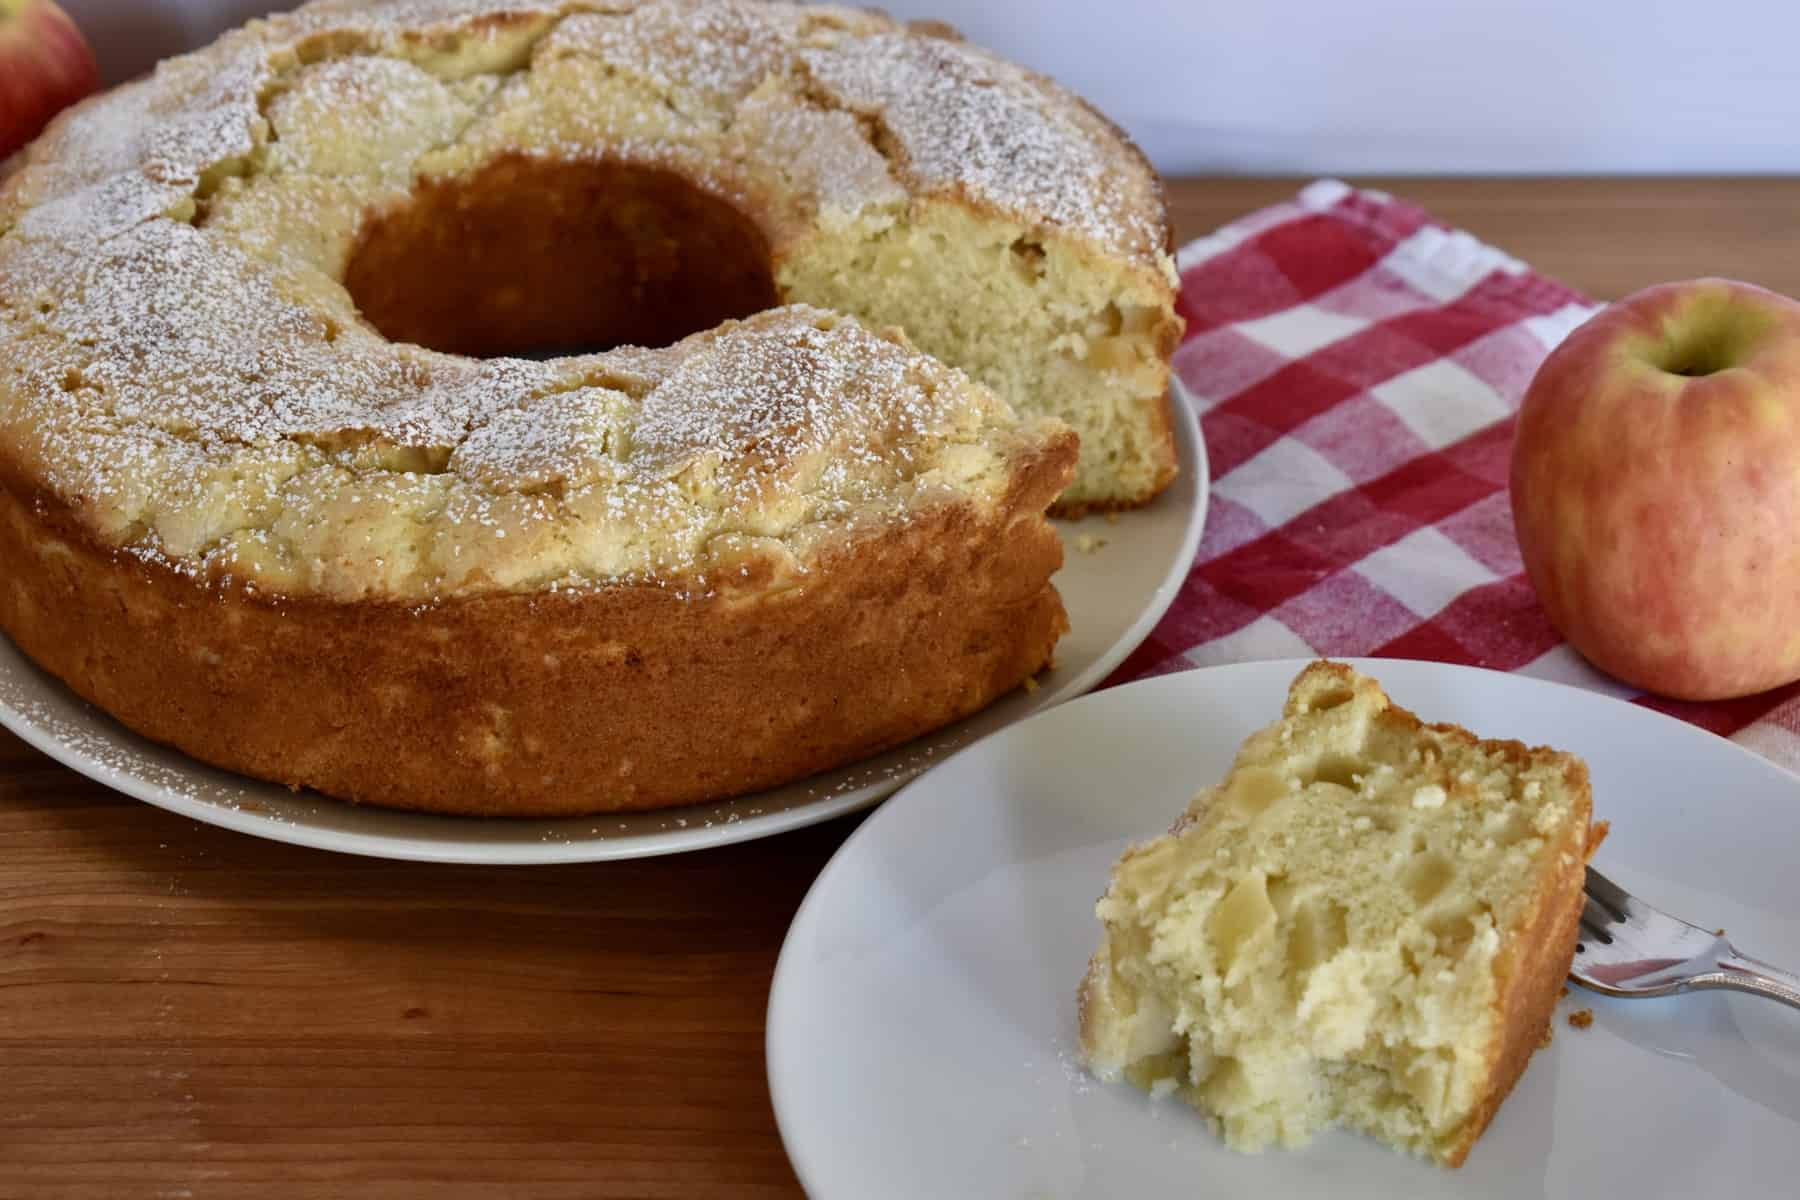 Italian apple cake with a slice of cake on a white plate.